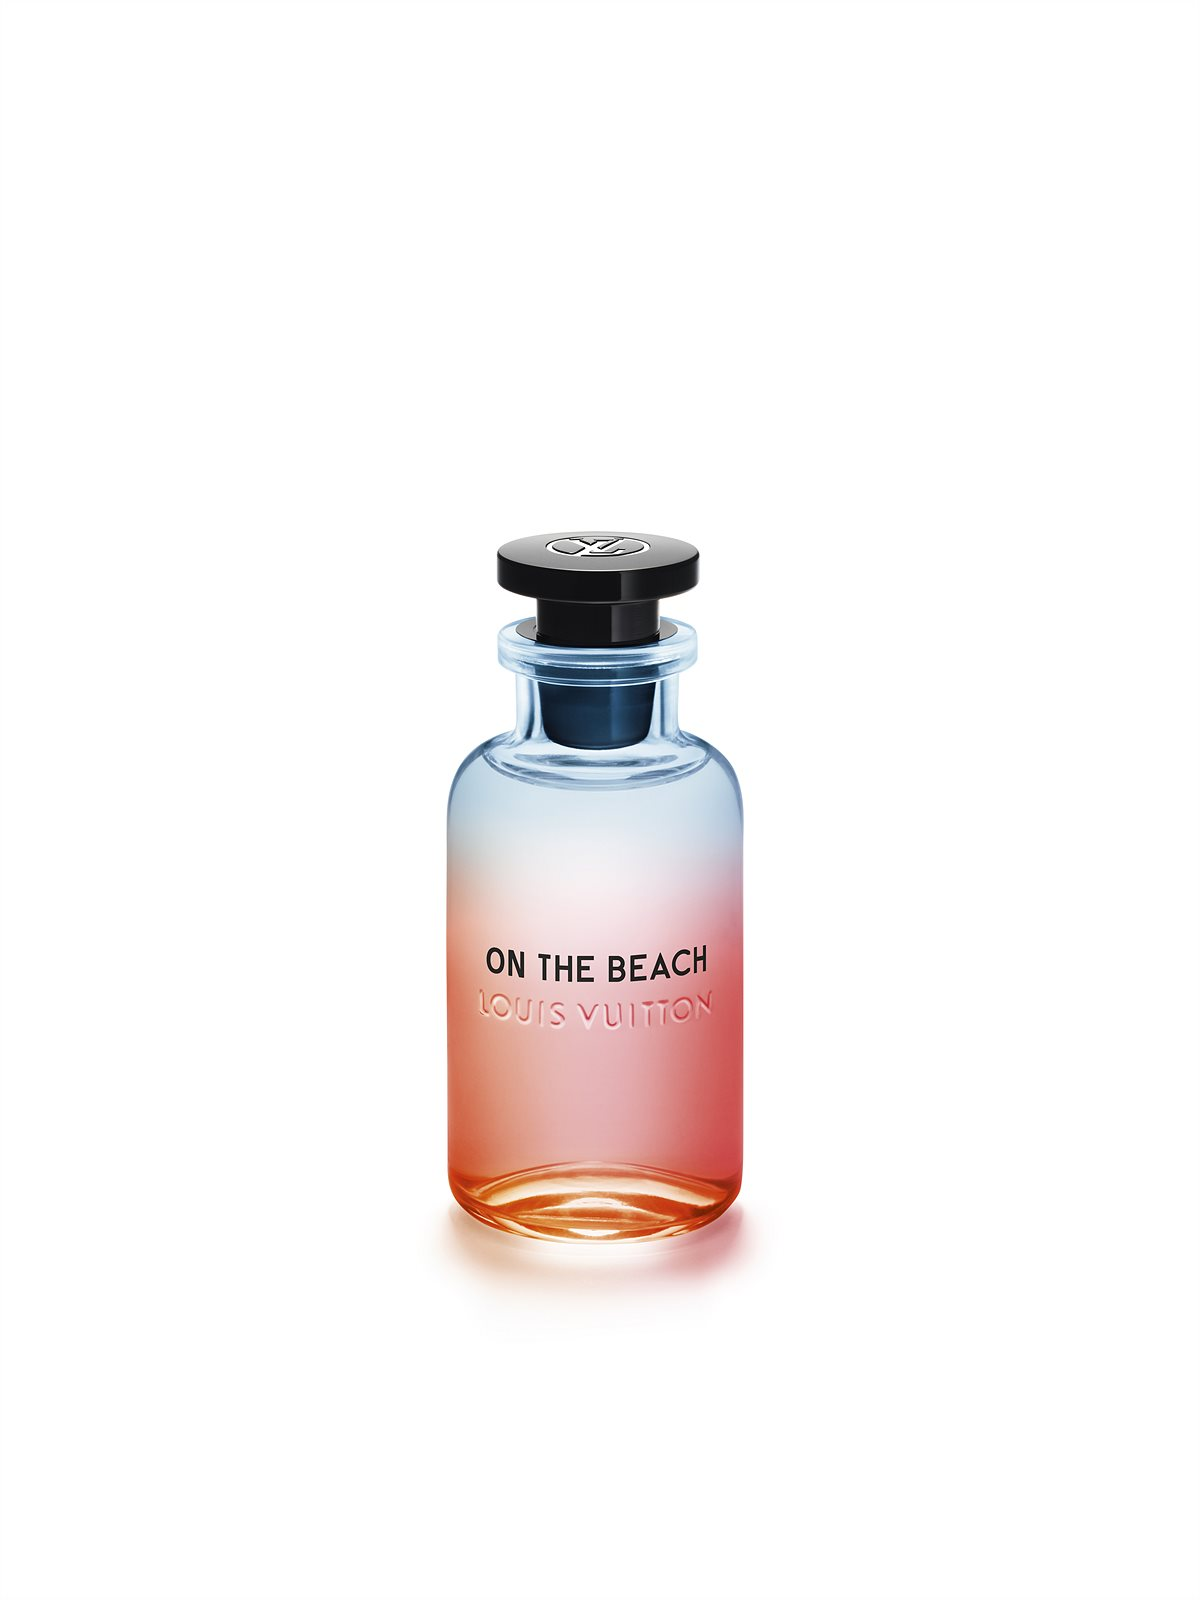 LV_ON THE BEACH 100ML_EUR 225,-